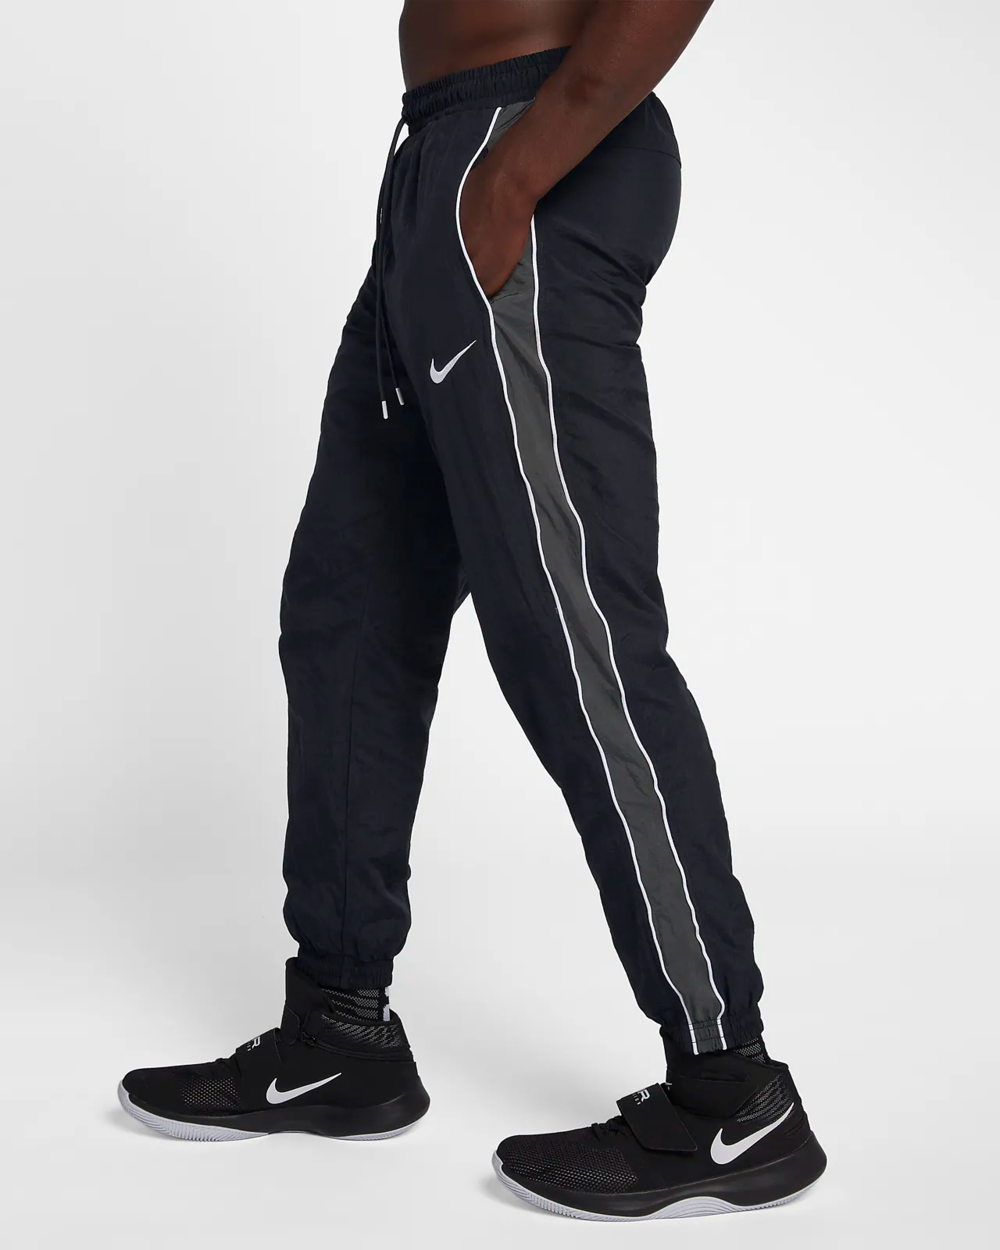 throwback-mens-woven-tracksuit-basketball-pants-cFcVn5 (3).png